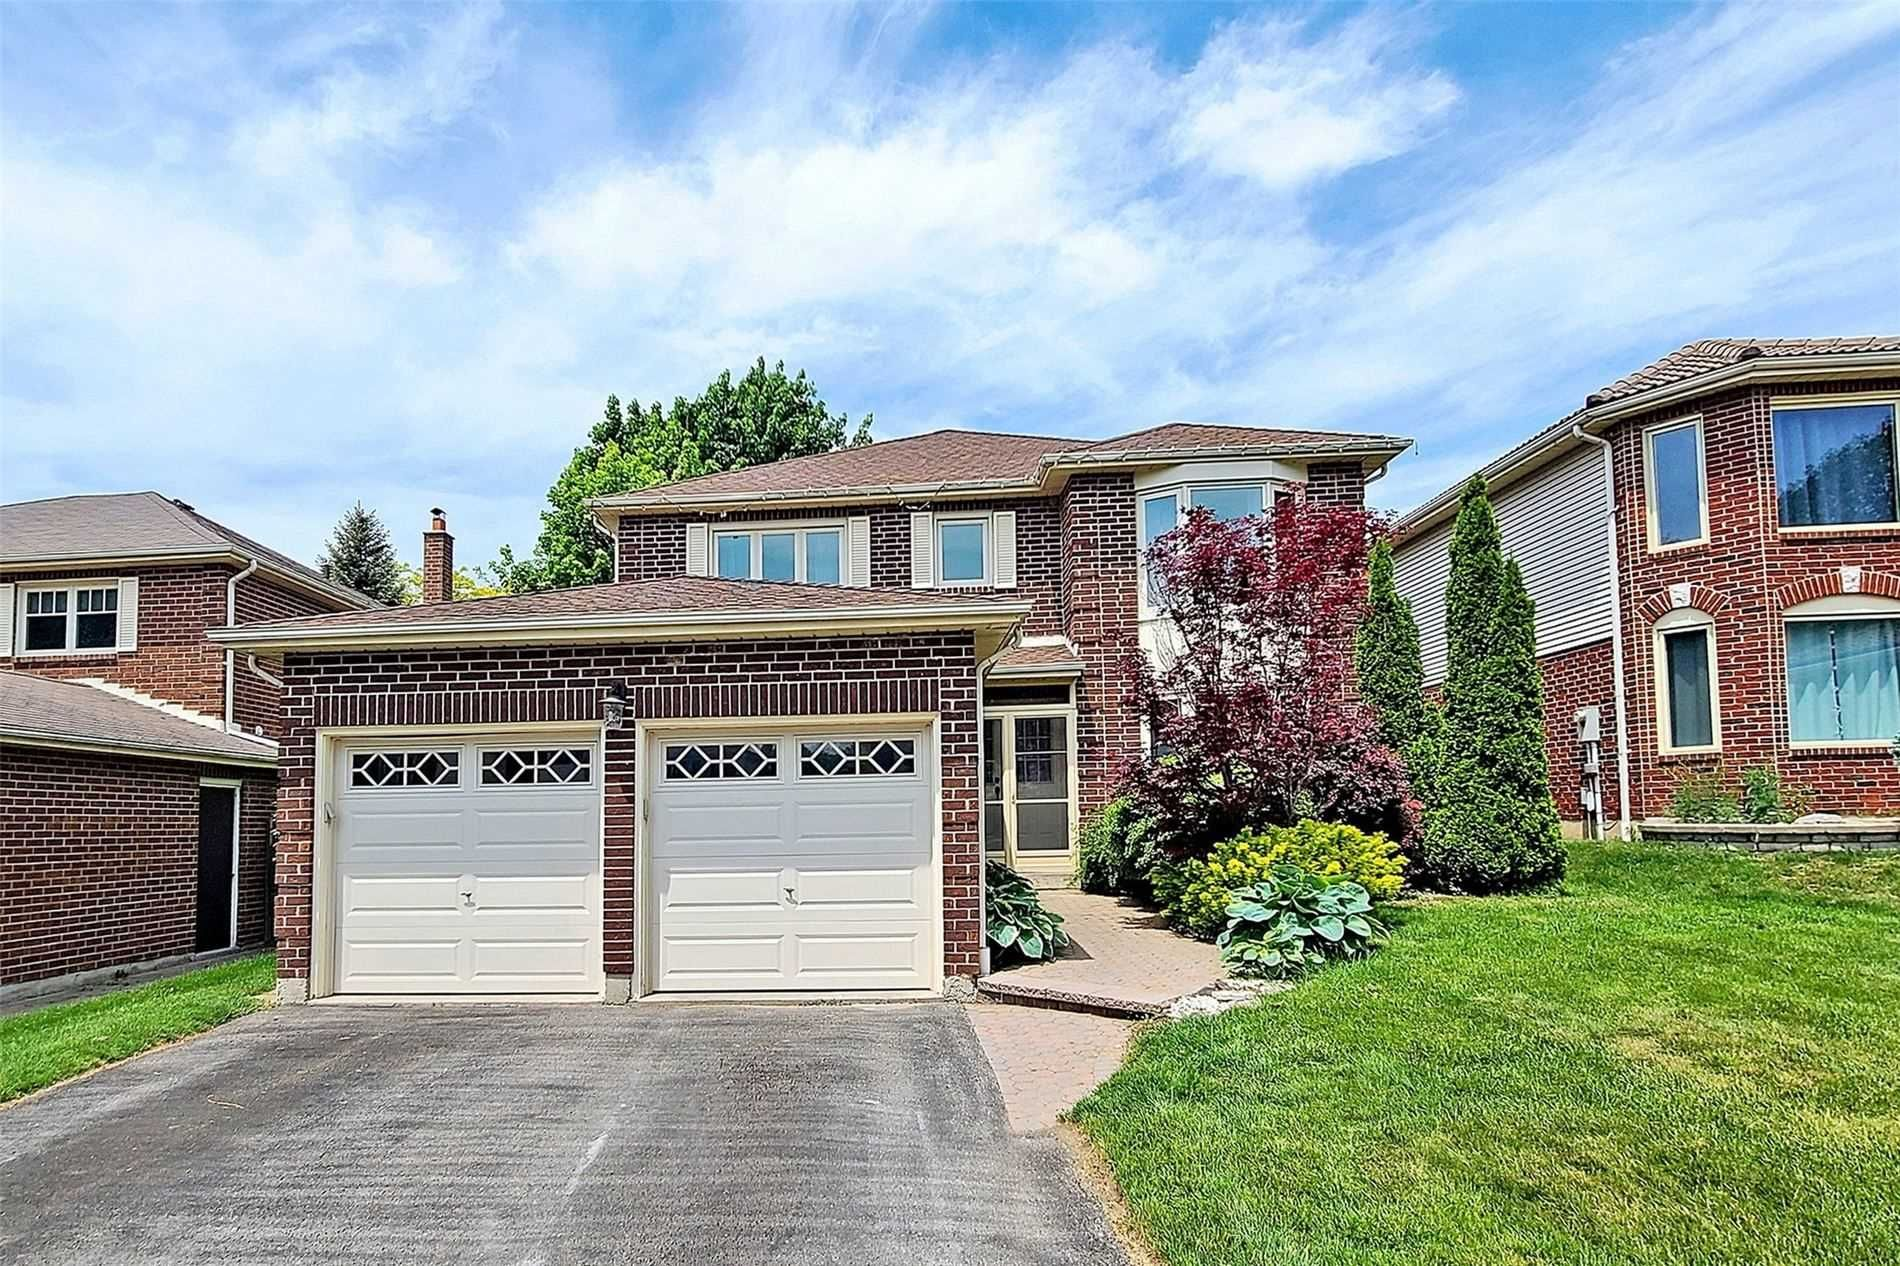 Main Photo: 8 Butterfield Crescent in Whitby: Pringle Creek House (2-Storey) for sale : MLS®# E5259277